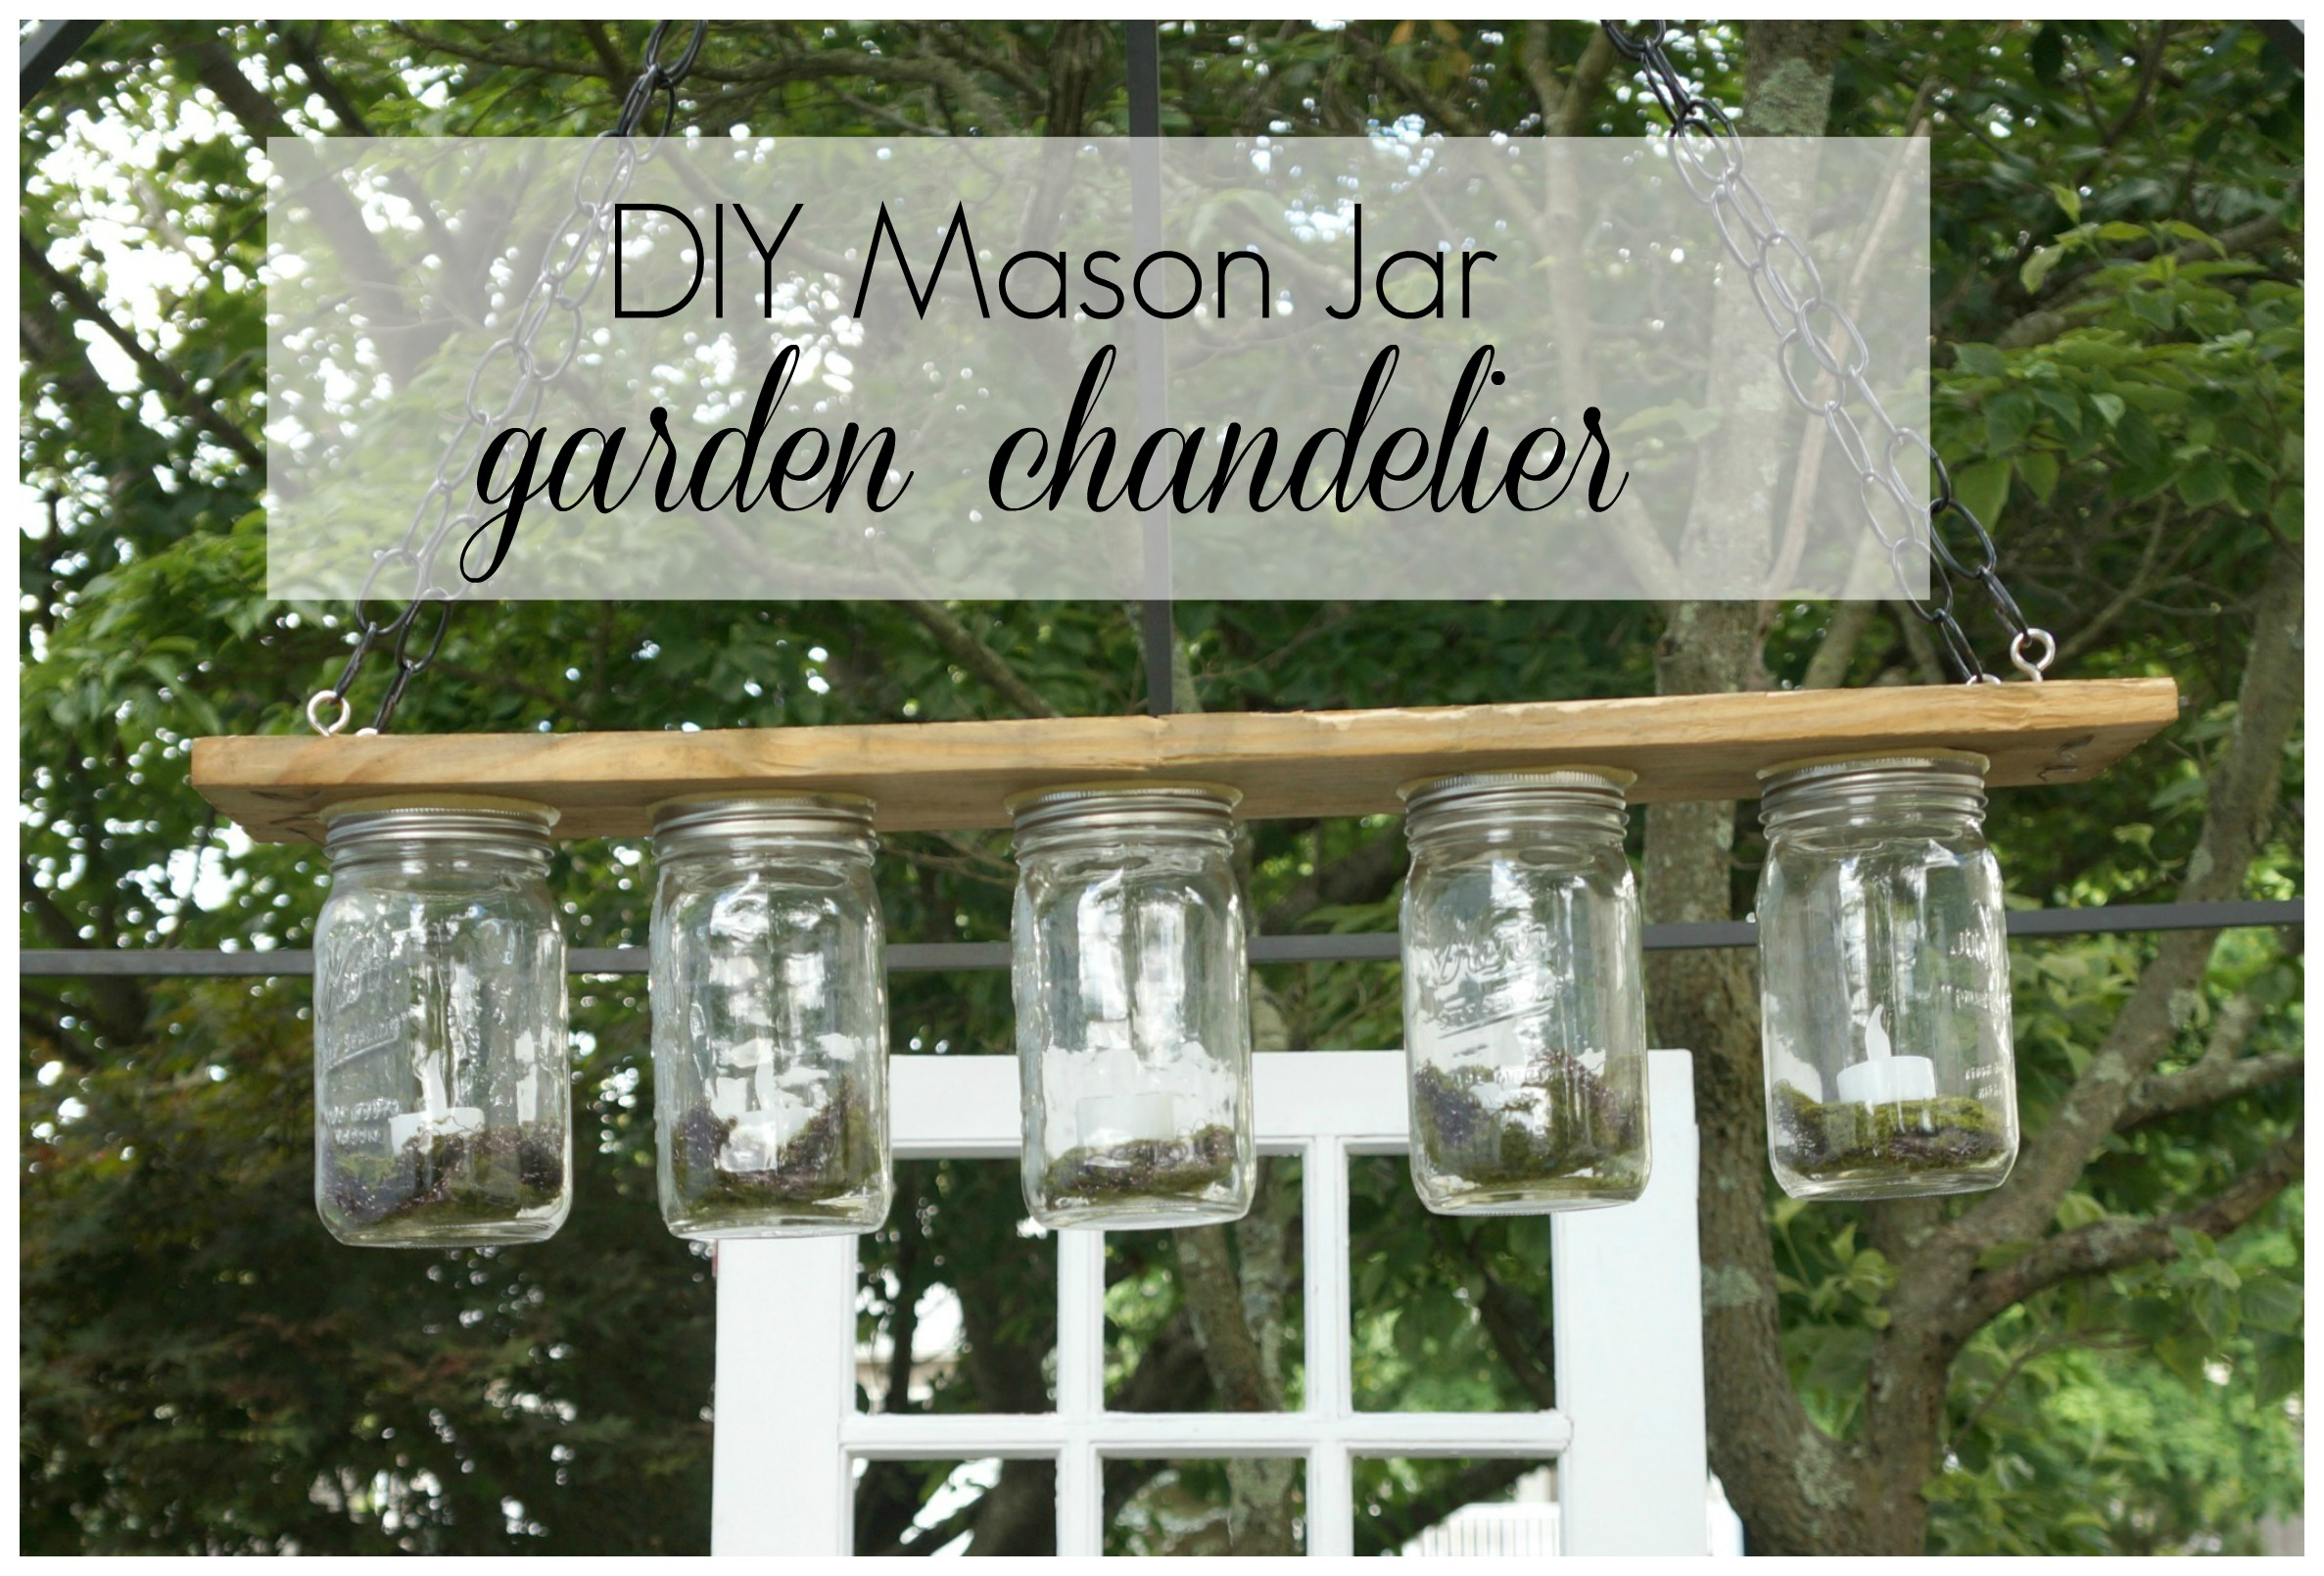 DIY Mason Jar Garden Chandelier label